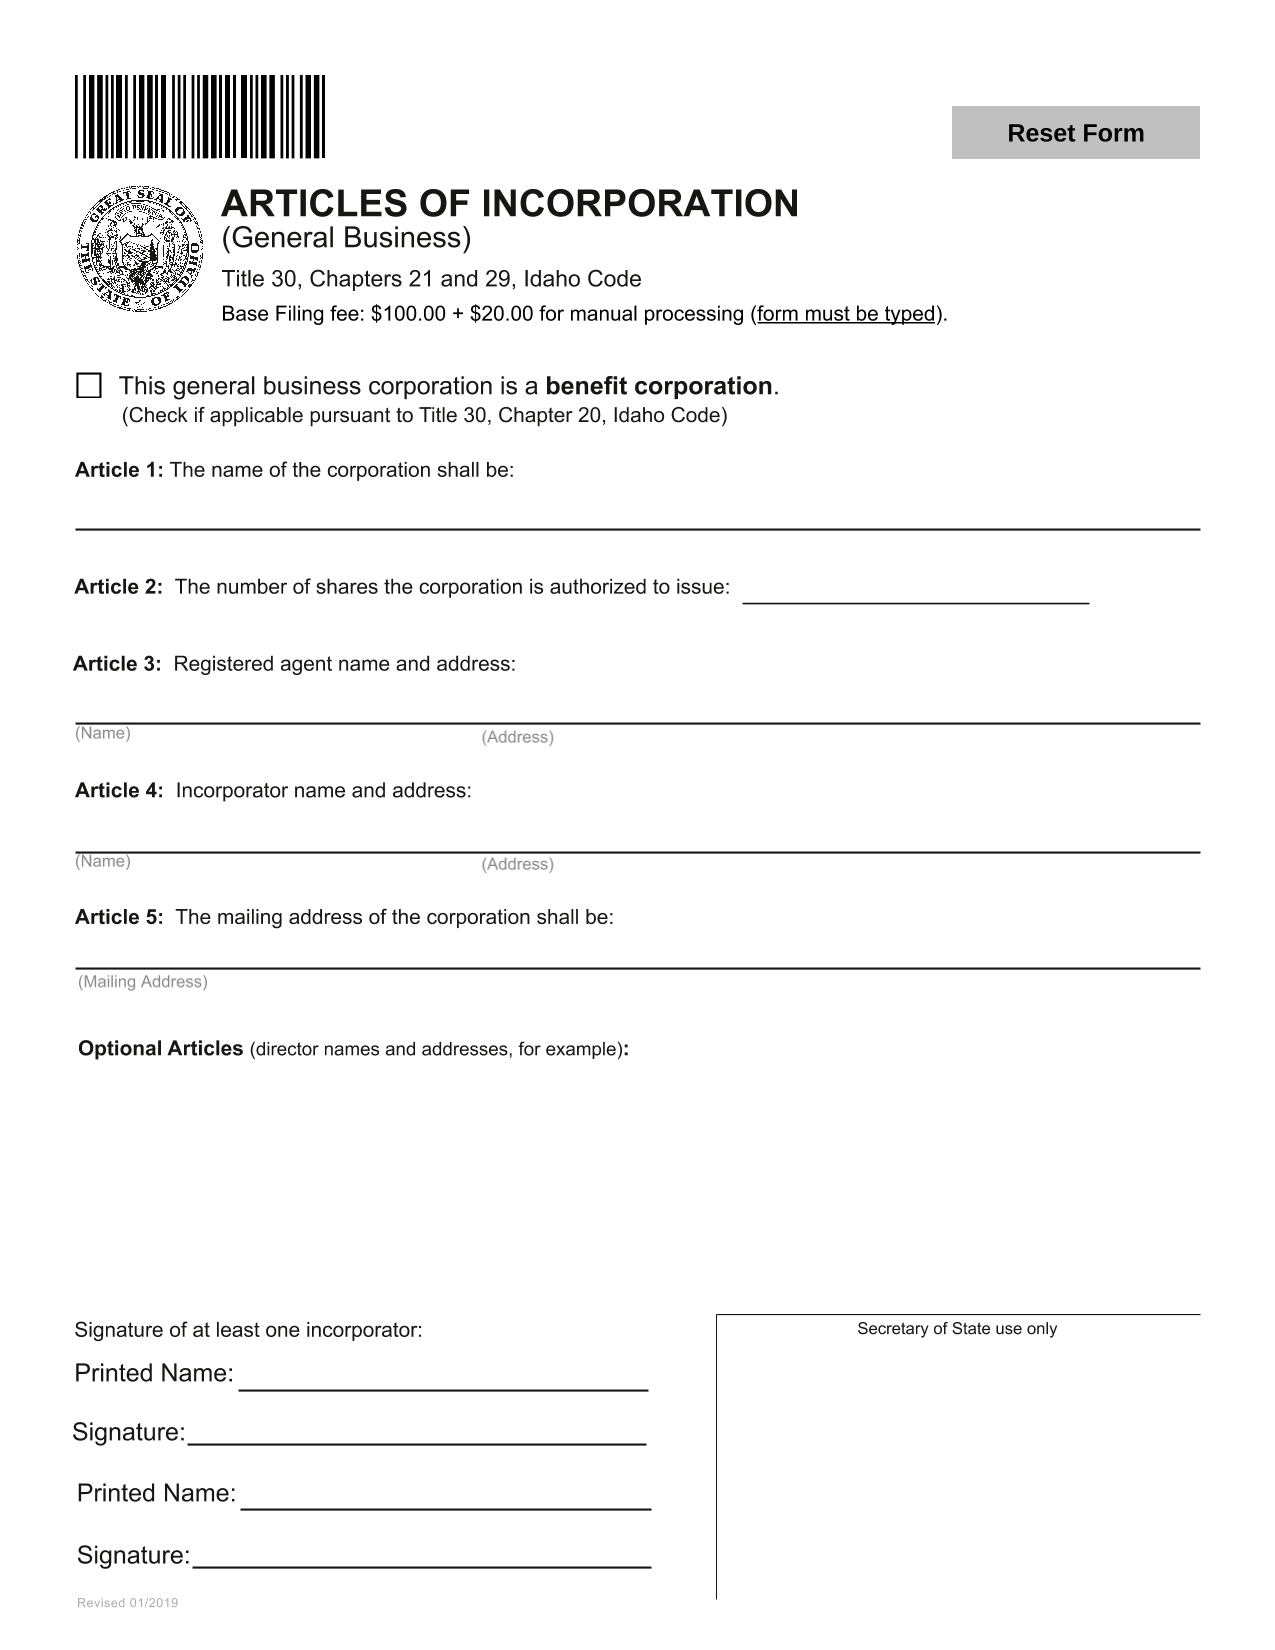 Idaho Articles of Incorporation